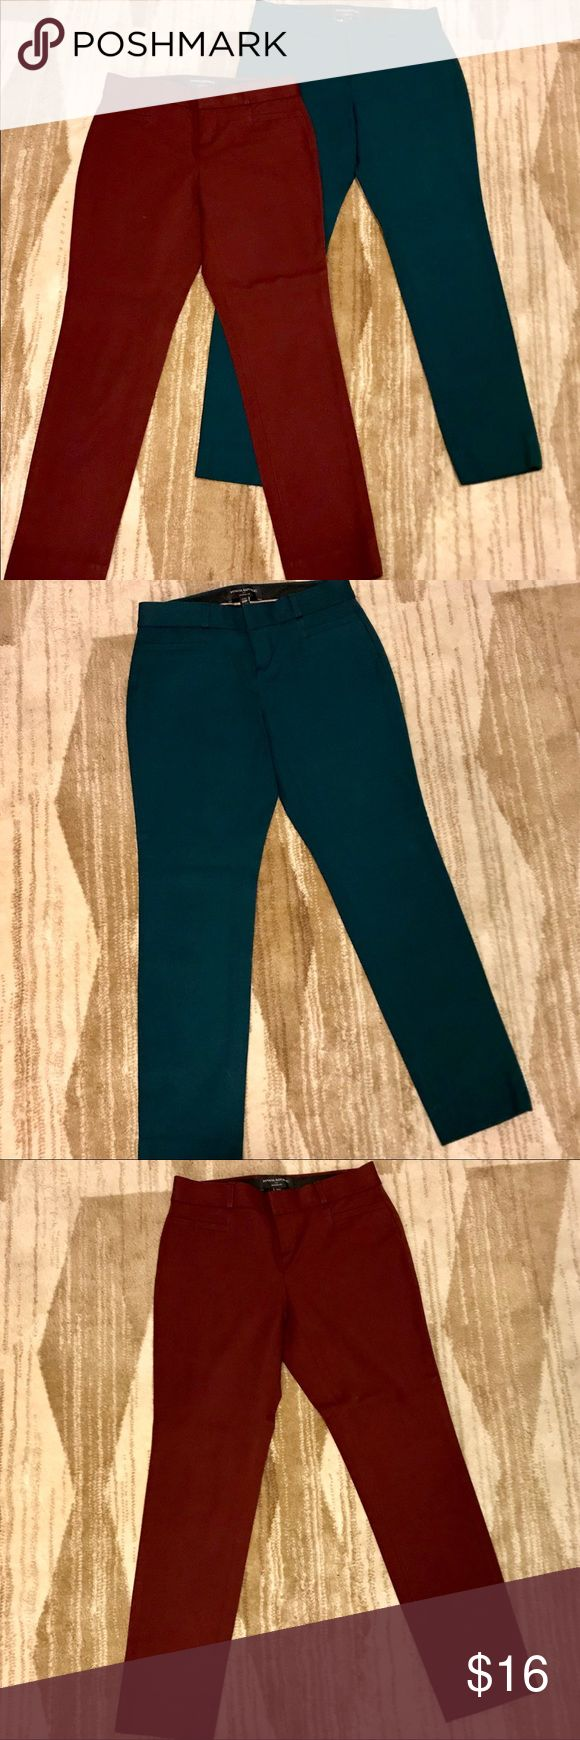 🔺2 PAIRS OF BANANA REPUBLIC PANTS 🔺 2 pairs of Jackson Fit 00 petite burgundy and forest green pants both in EXCELLENT condition!! No Flaws. Zipper fly, hook closure, and these hit right at ankle. Bundle and Save!! Banana Republic Pants Ankle & Cropped